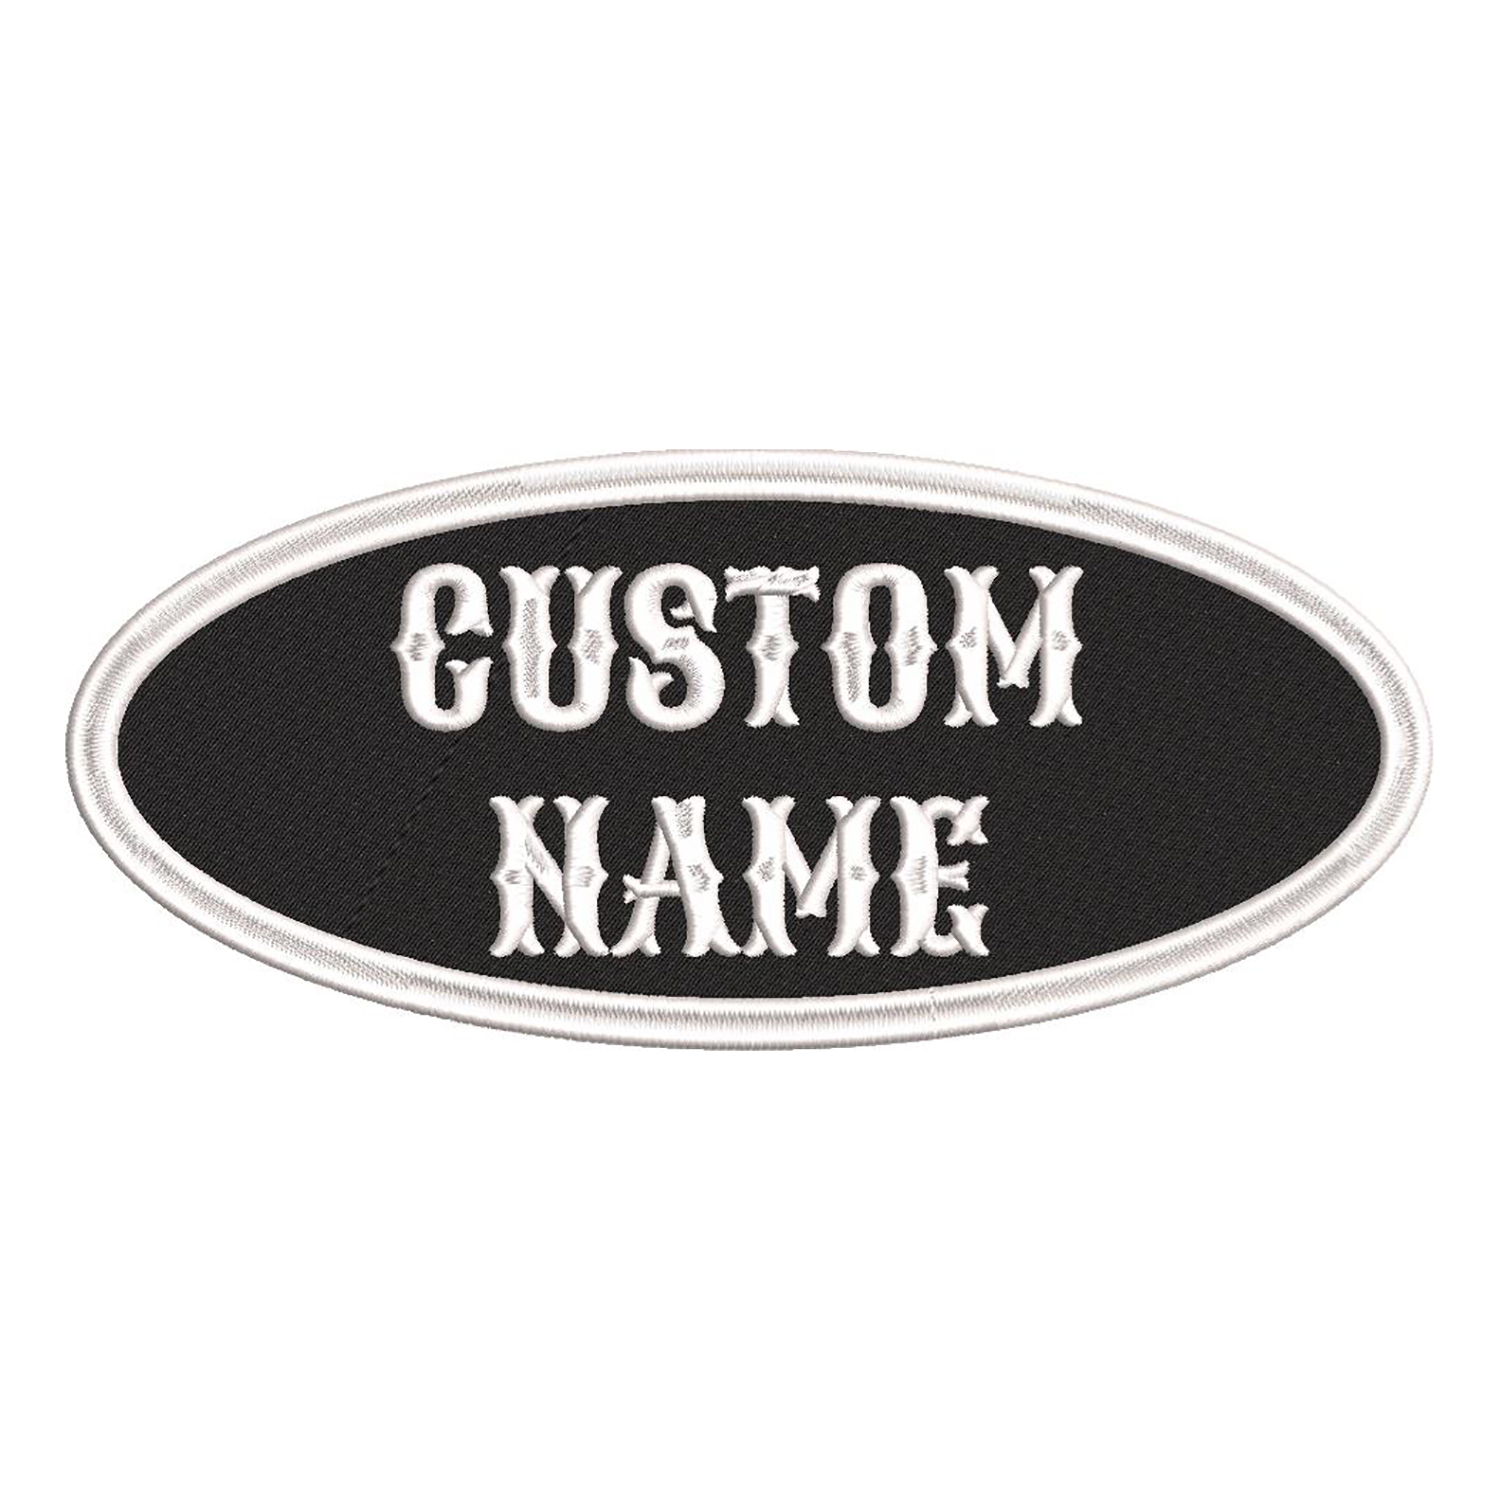 4 inches Oval Custom Embroidered Name Tag Biker Patch